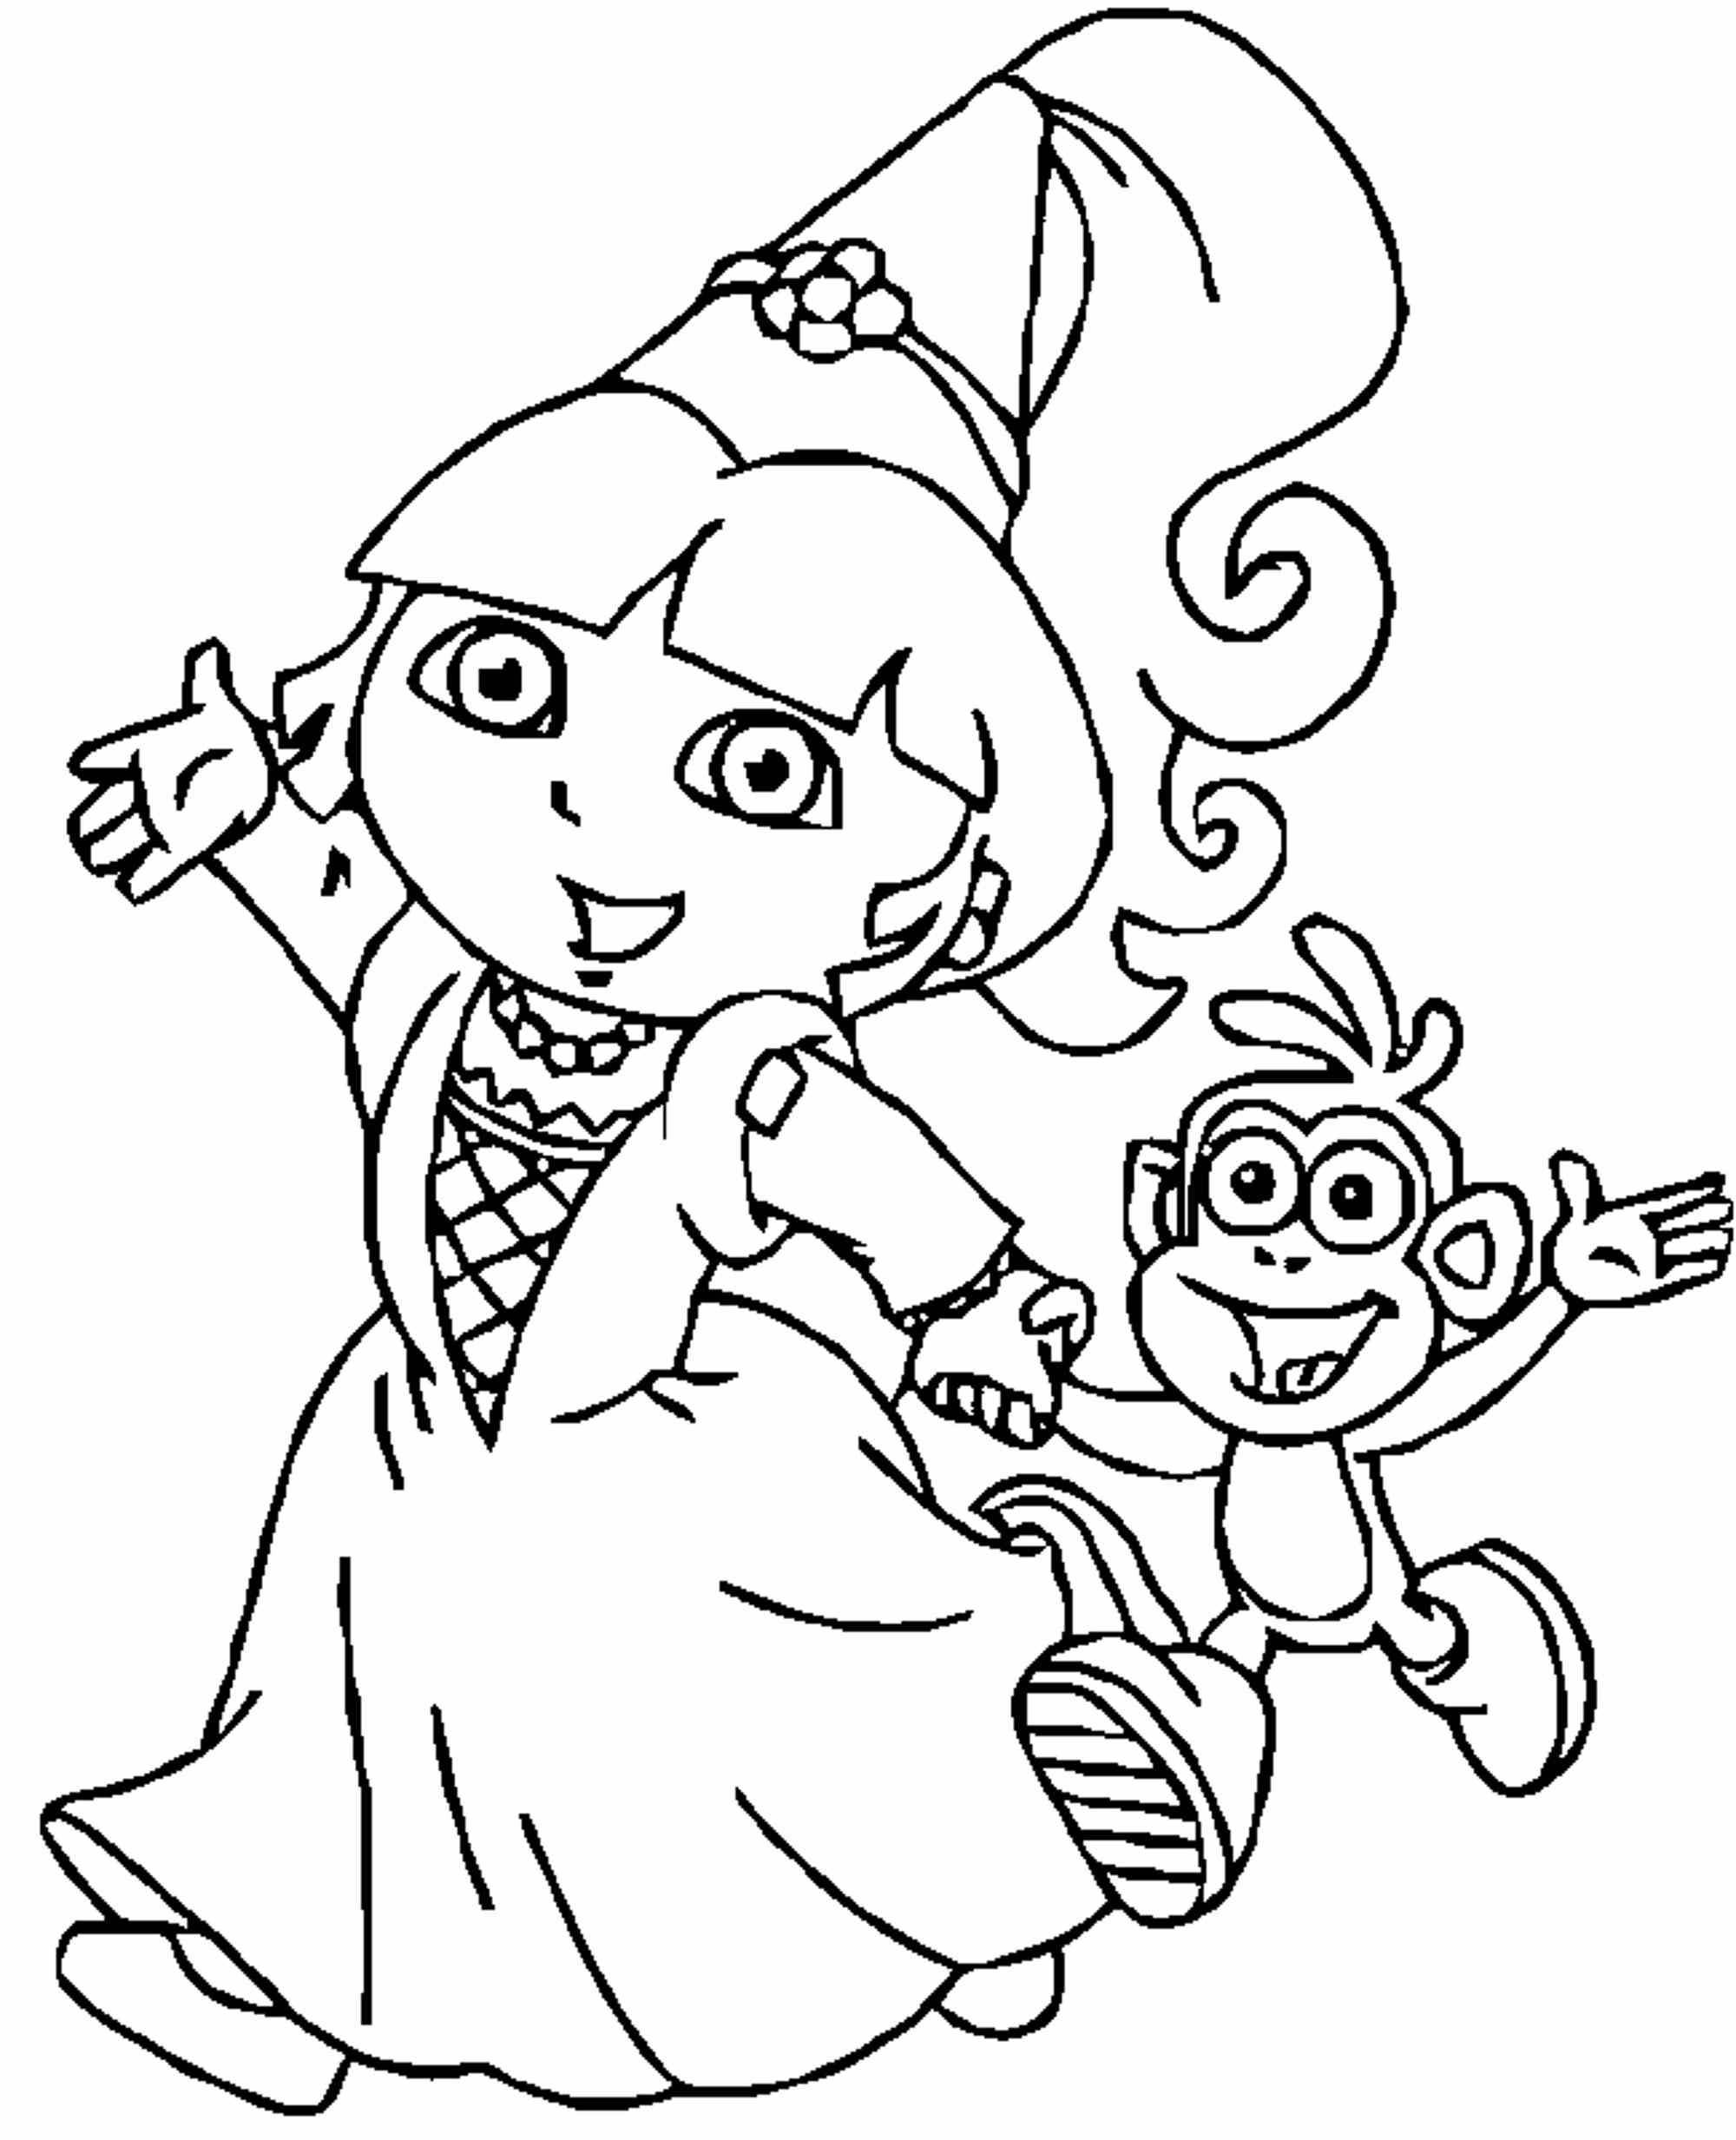 Print Download Dora Coloring Pages To Learn New Things